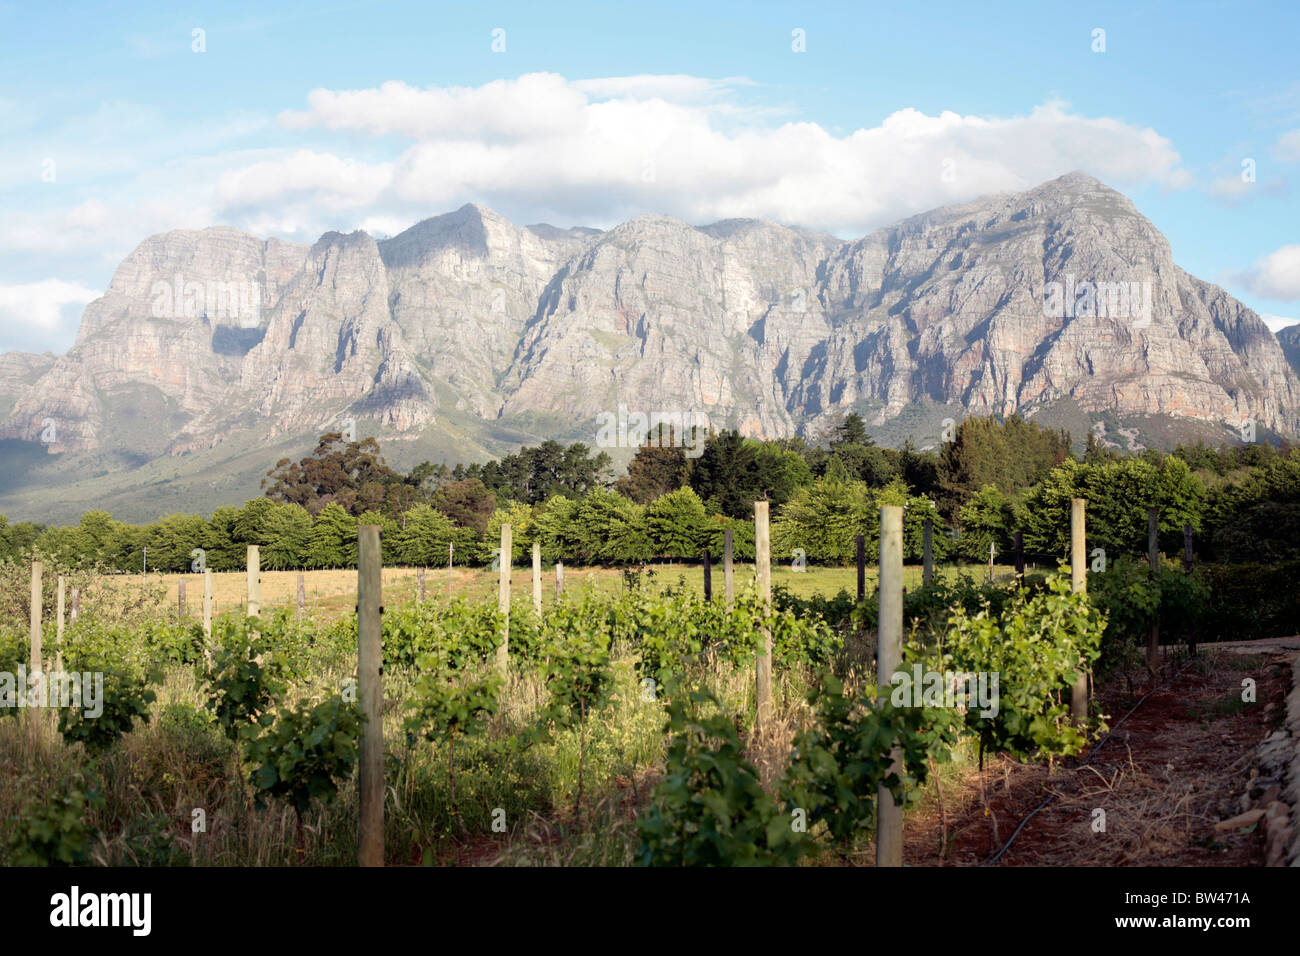 View from the Pommier wine estate, Stellenbosch, South Africa. - Stock Image